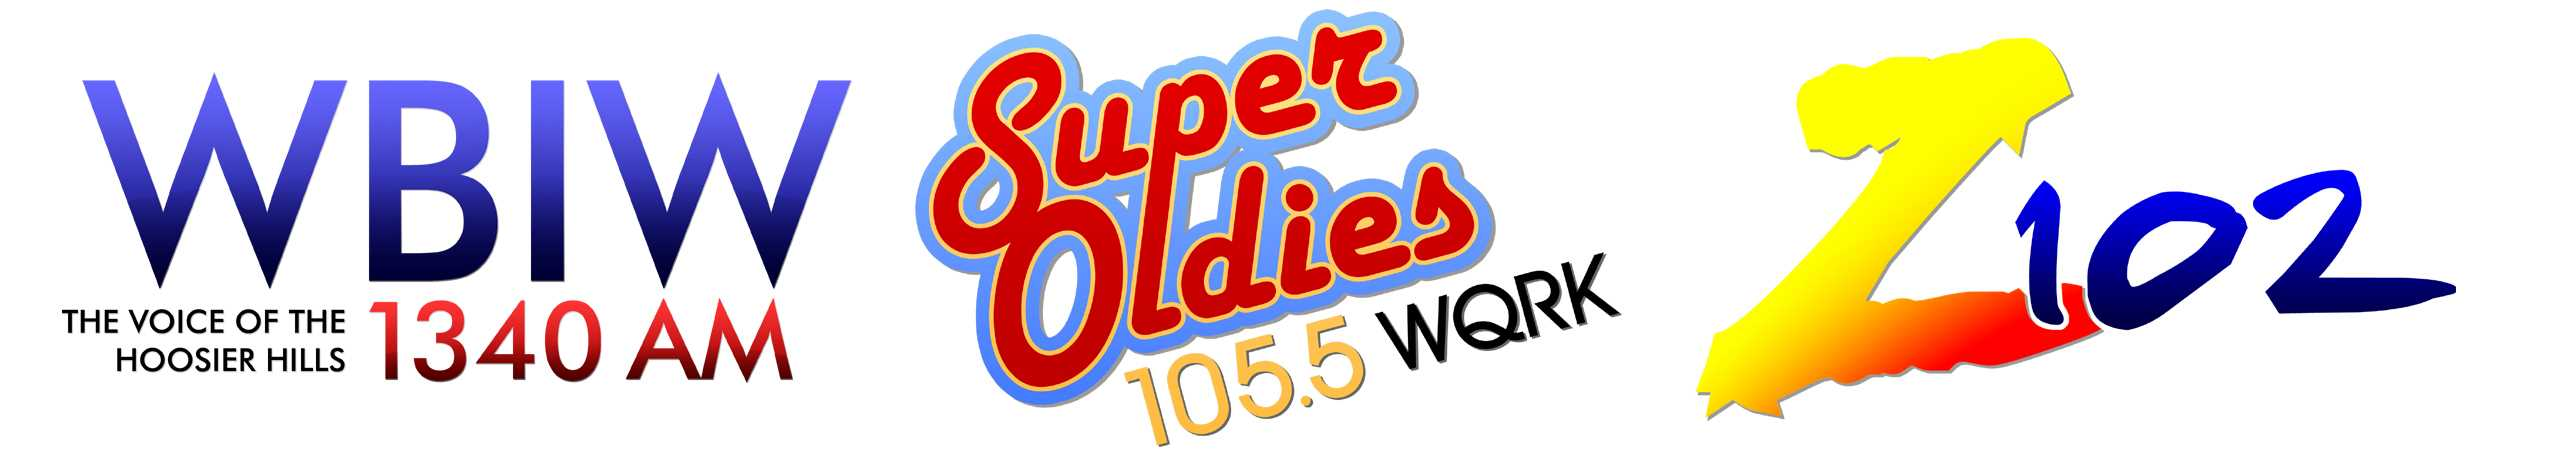 WIBW Super Oldies Z102